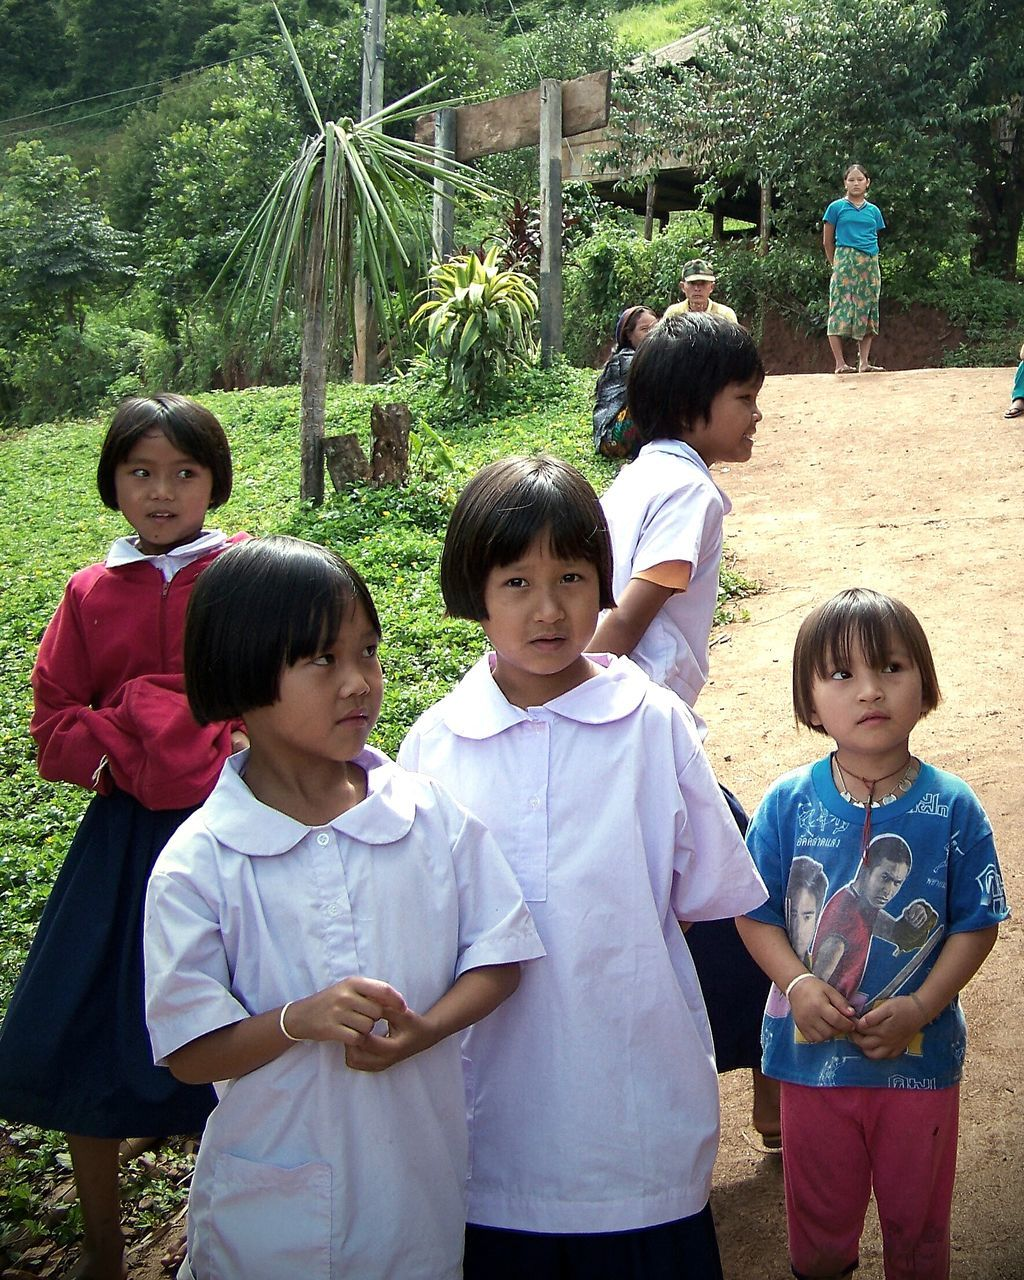 boys, childhood, girls, real people, education, elementary age, casual clothing, standing, leisure activity, day, medium group of people, tree, outdoors, fun, togetherness, lifestyles, growth, learning, smiling, happiness, school uniform, young women, child, nature, student, animal themes, young adult